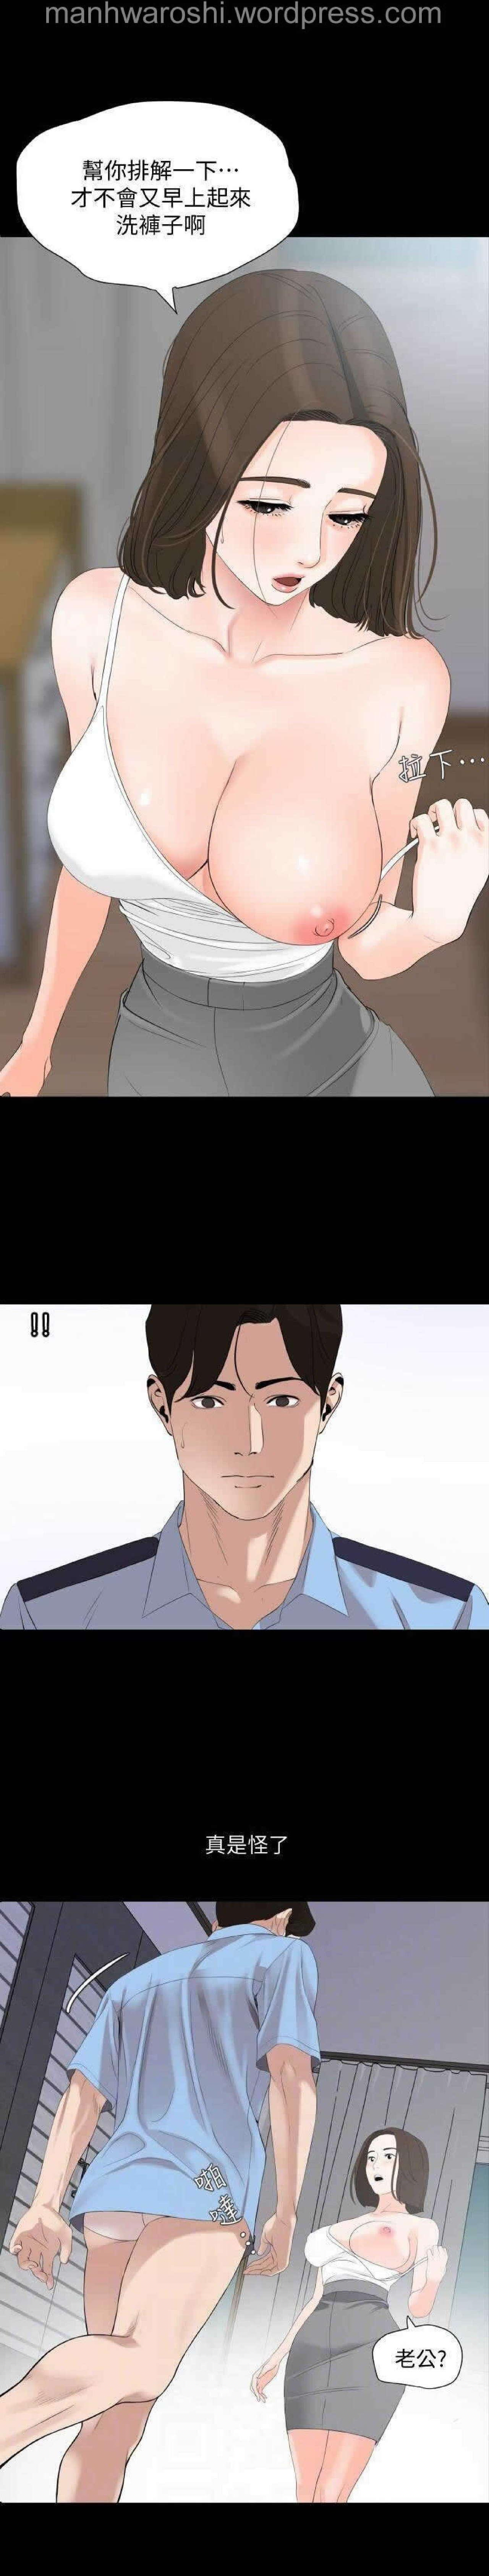 Don't Be Like This! Son-In-Law | 与岳母同屋 第 7 [Chinese] Manhwa 10